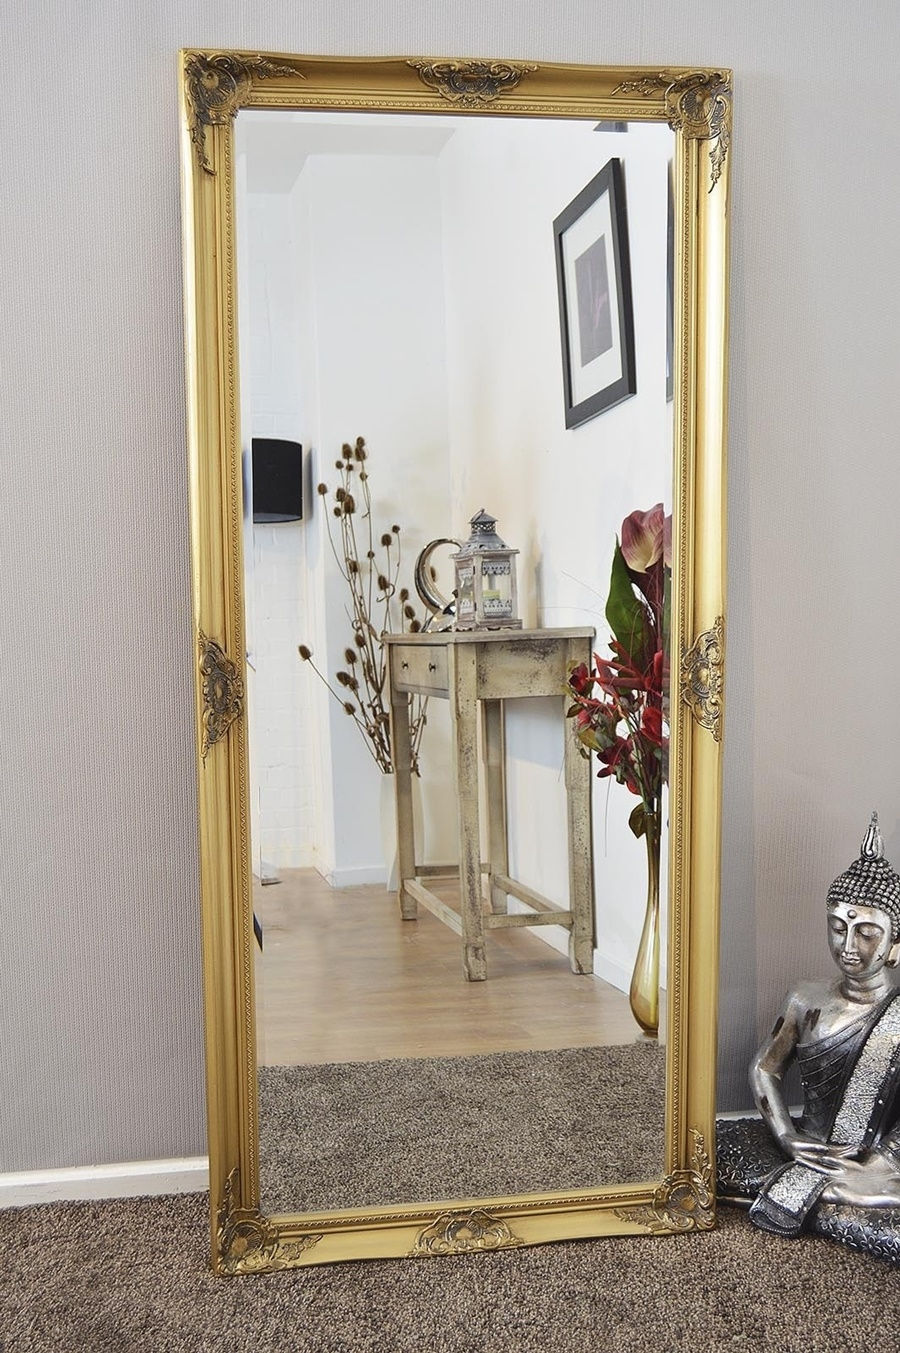 How To Refinish Old Gold Framed Wall Mirror Doherty House Within Old Style Mirror (Image 7 of 15)